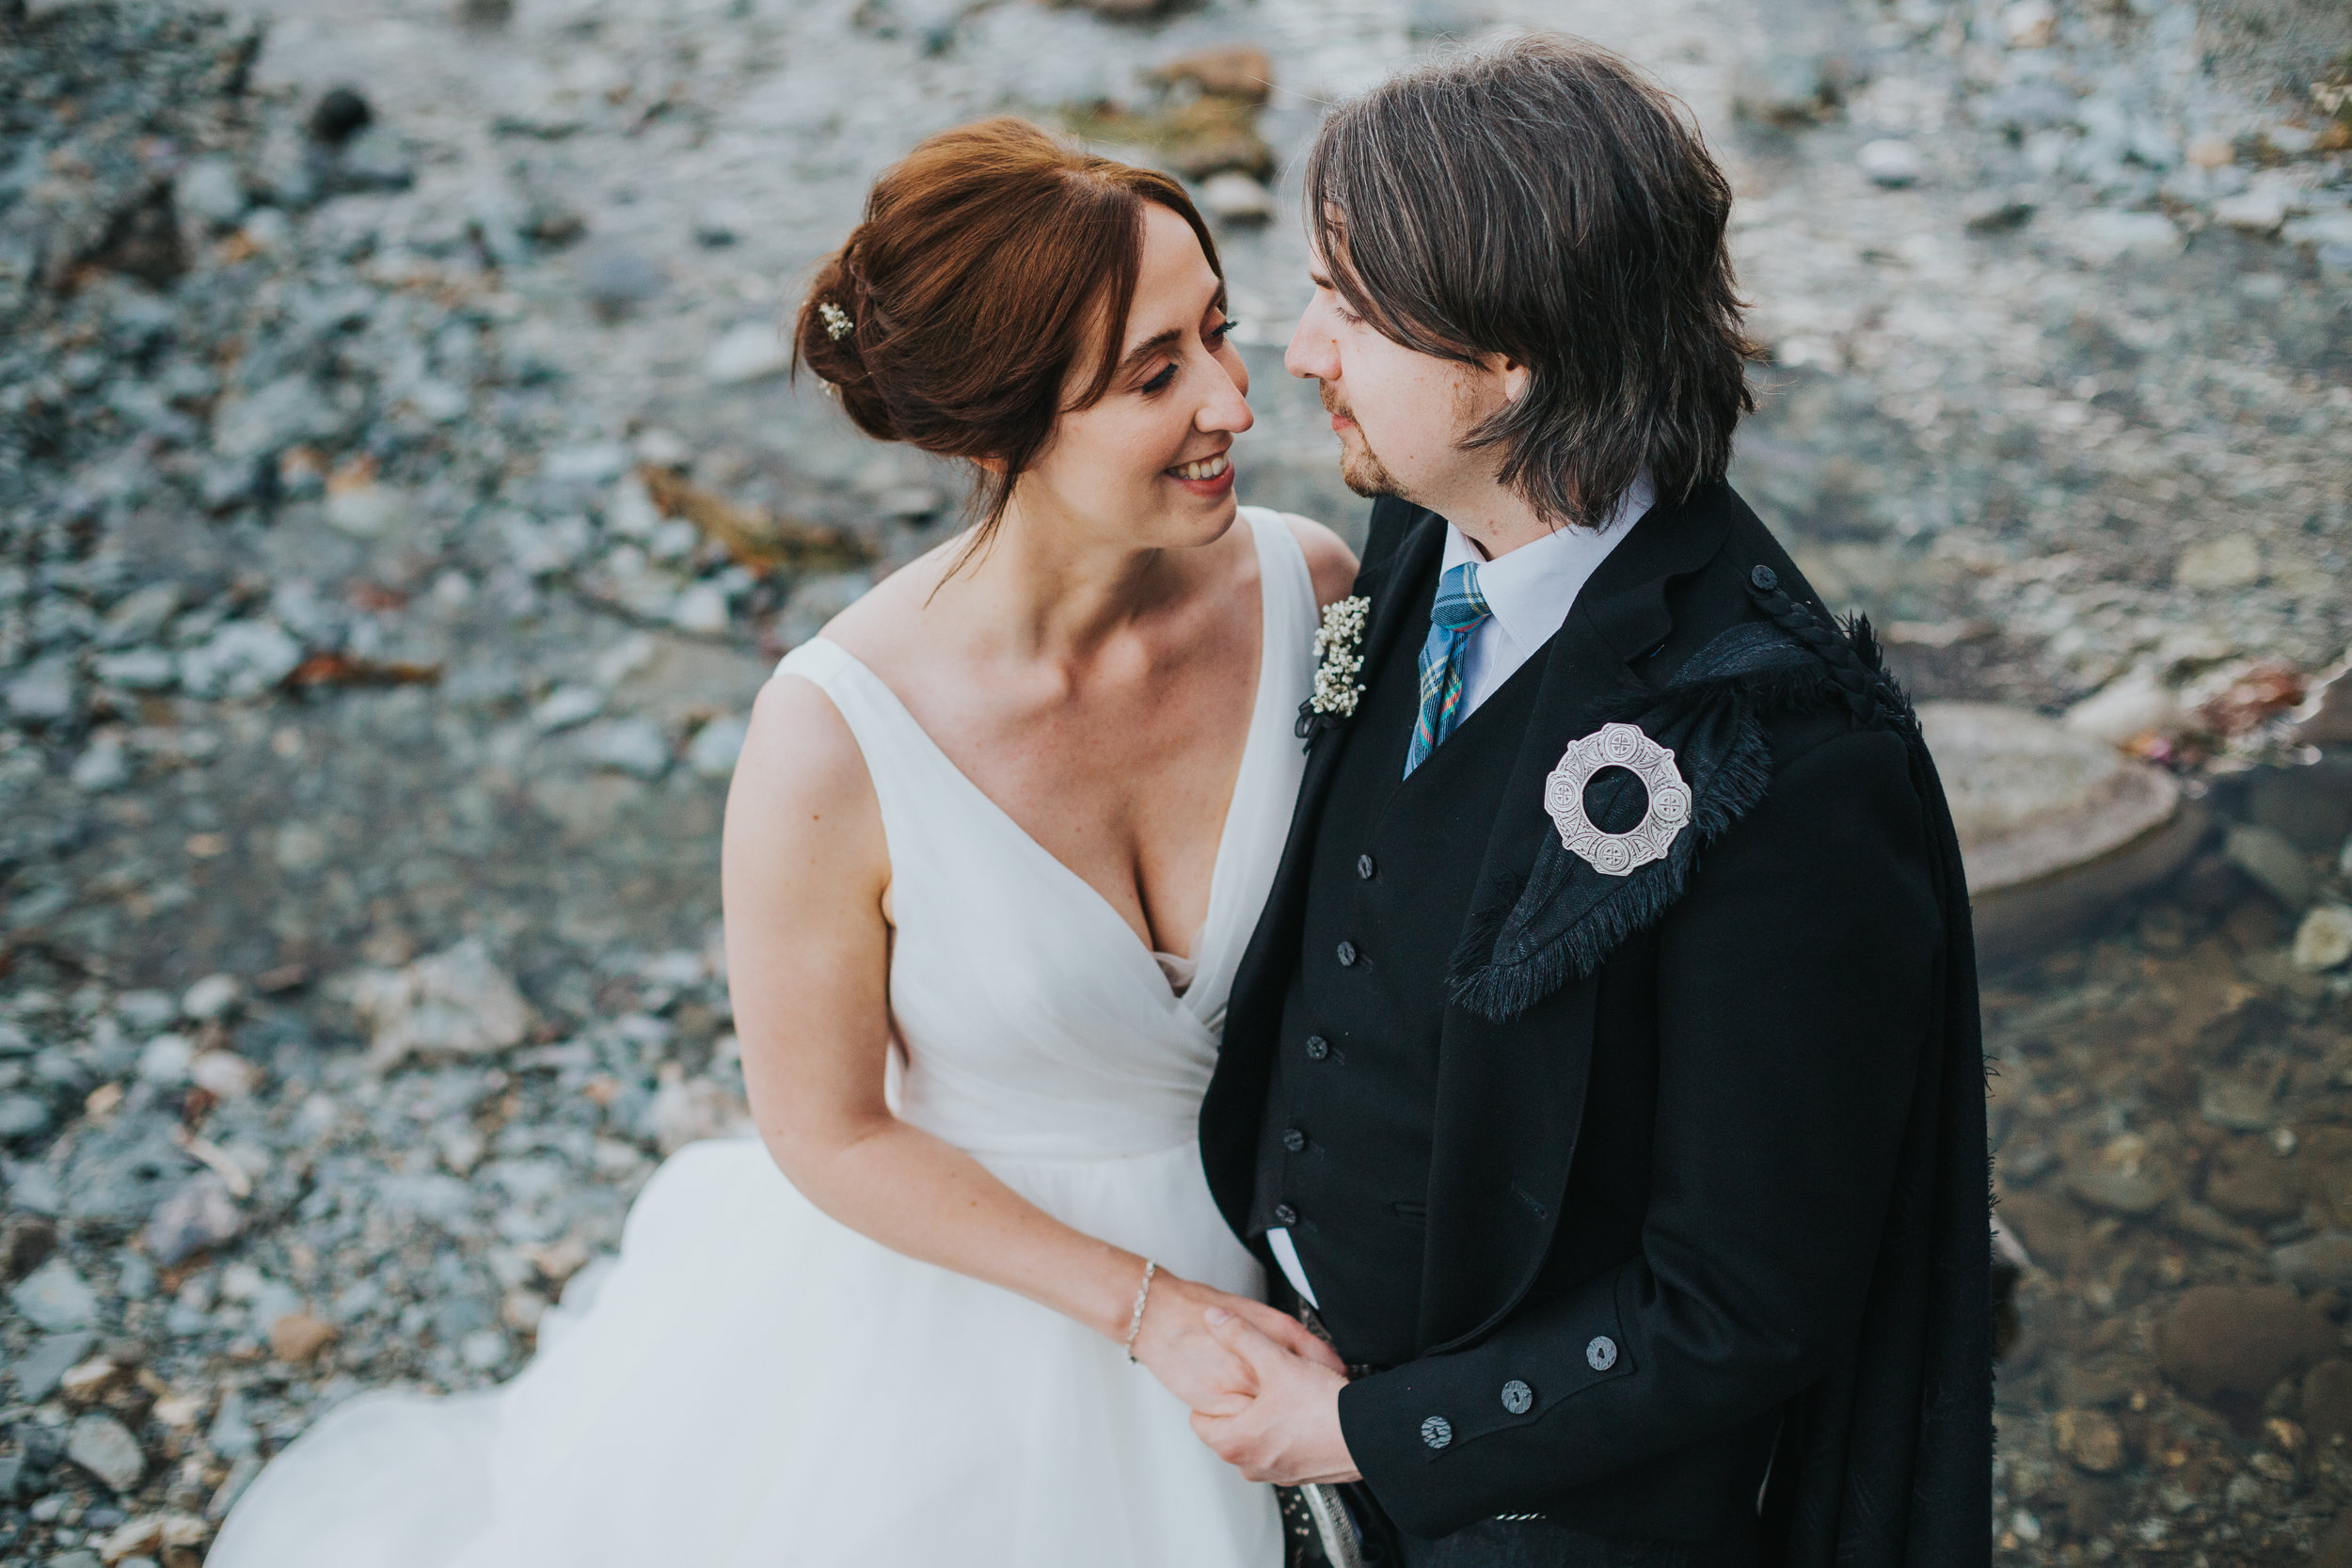 Bride and Groom have a romantic moment together, Loch Ard, Scotland.